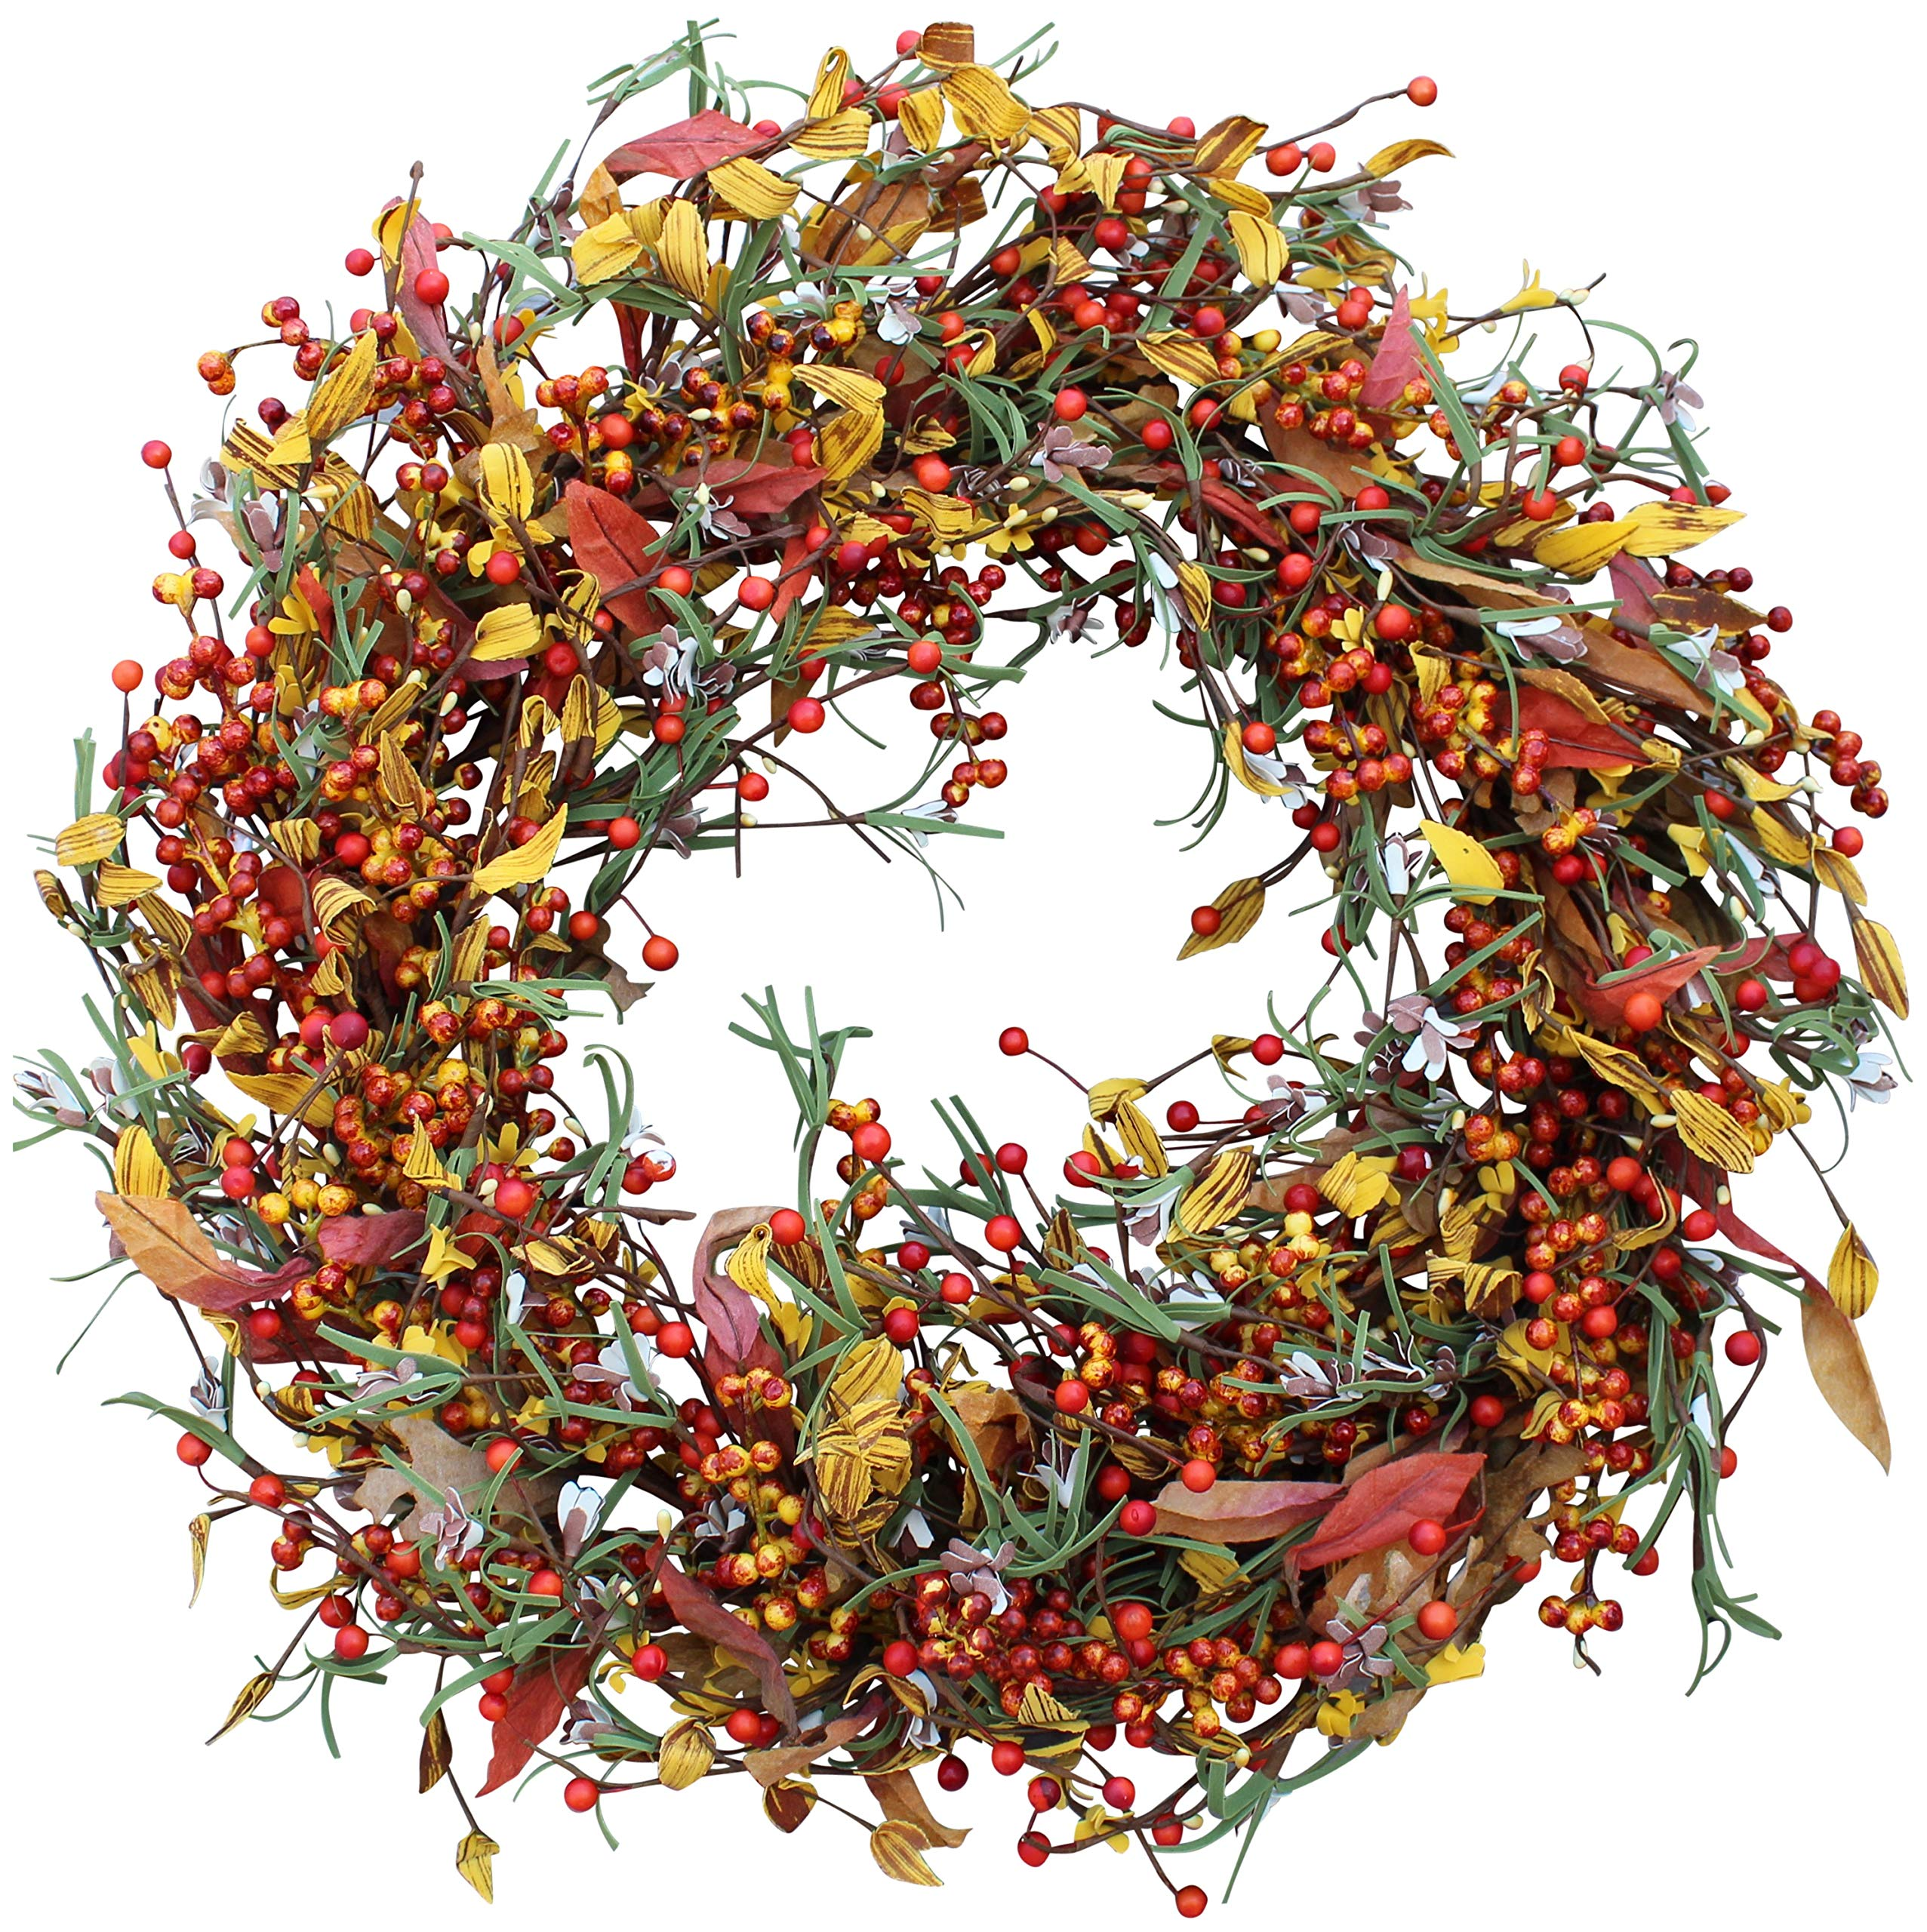 Appalachia Berry Silk Fall Door Wreath 22 inch - Autumn Berries and Foliage Enhance Home Decor, Approved for Covered Outdoor Use, Beautiful White Gift Box Included by The Wreath Depot